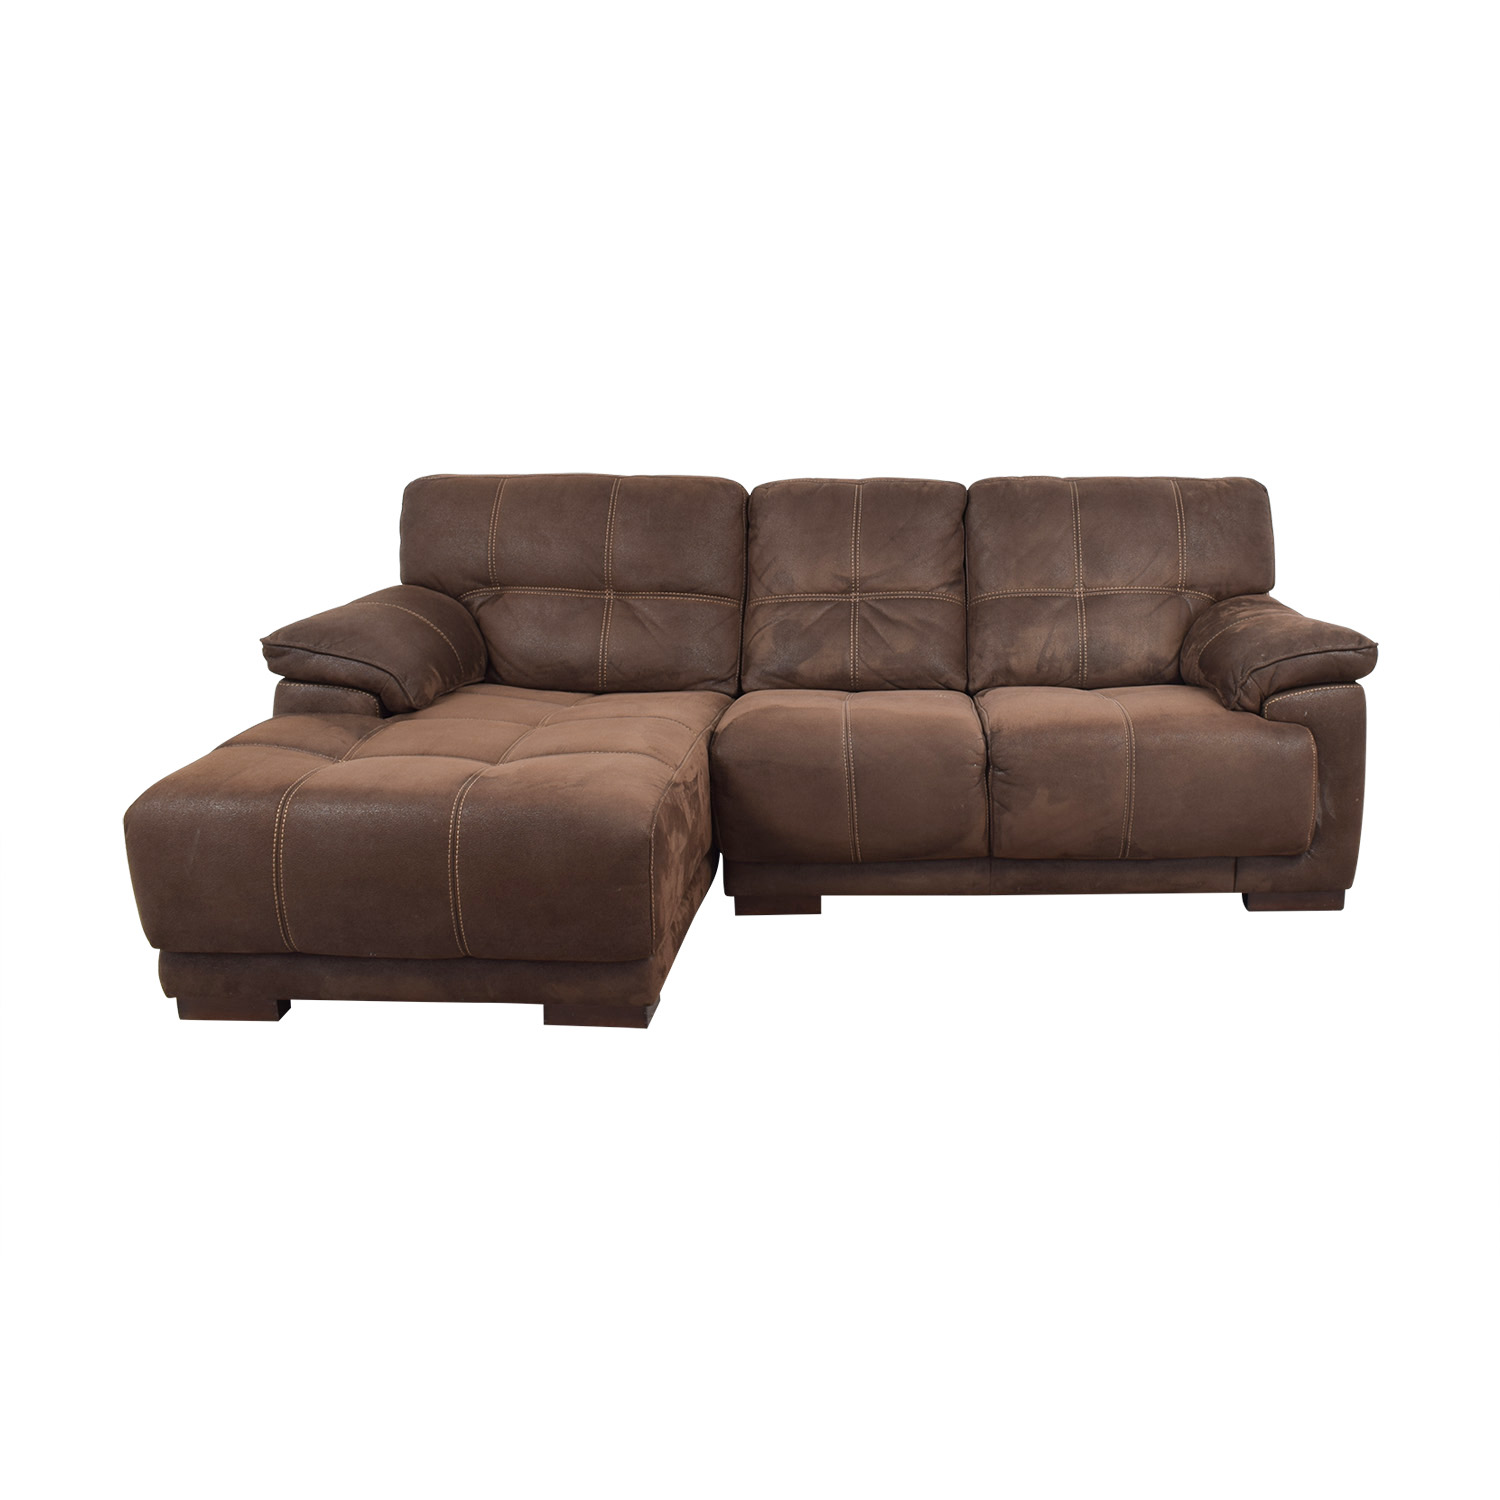 Raymour & Flanigan Brown Microfiber Chaise Sectional sale